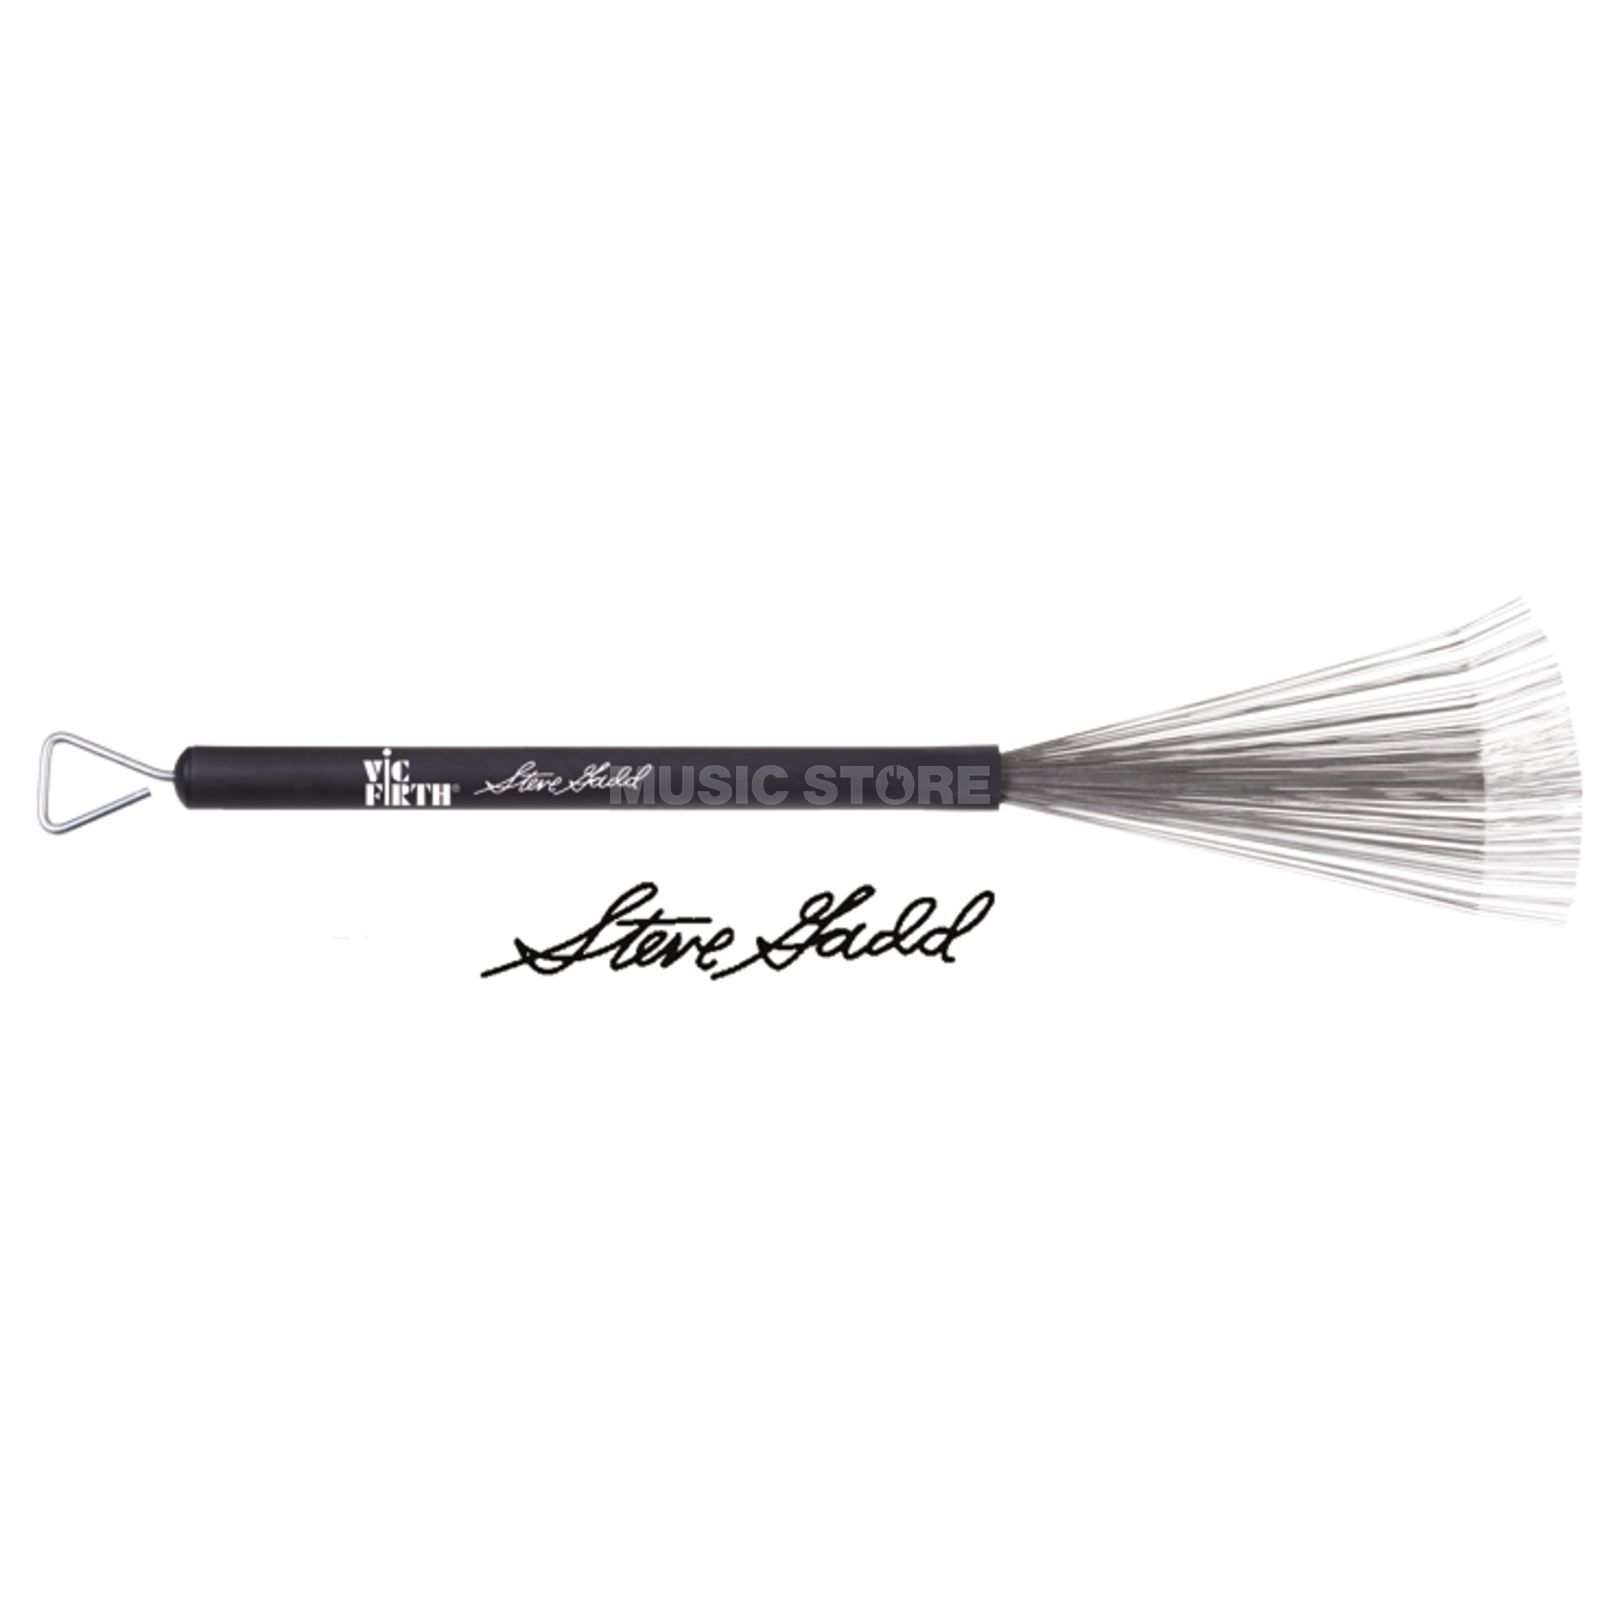 Vic-Firth Steve Gadd Wire Brushes SGWB, Signature Series Product Image